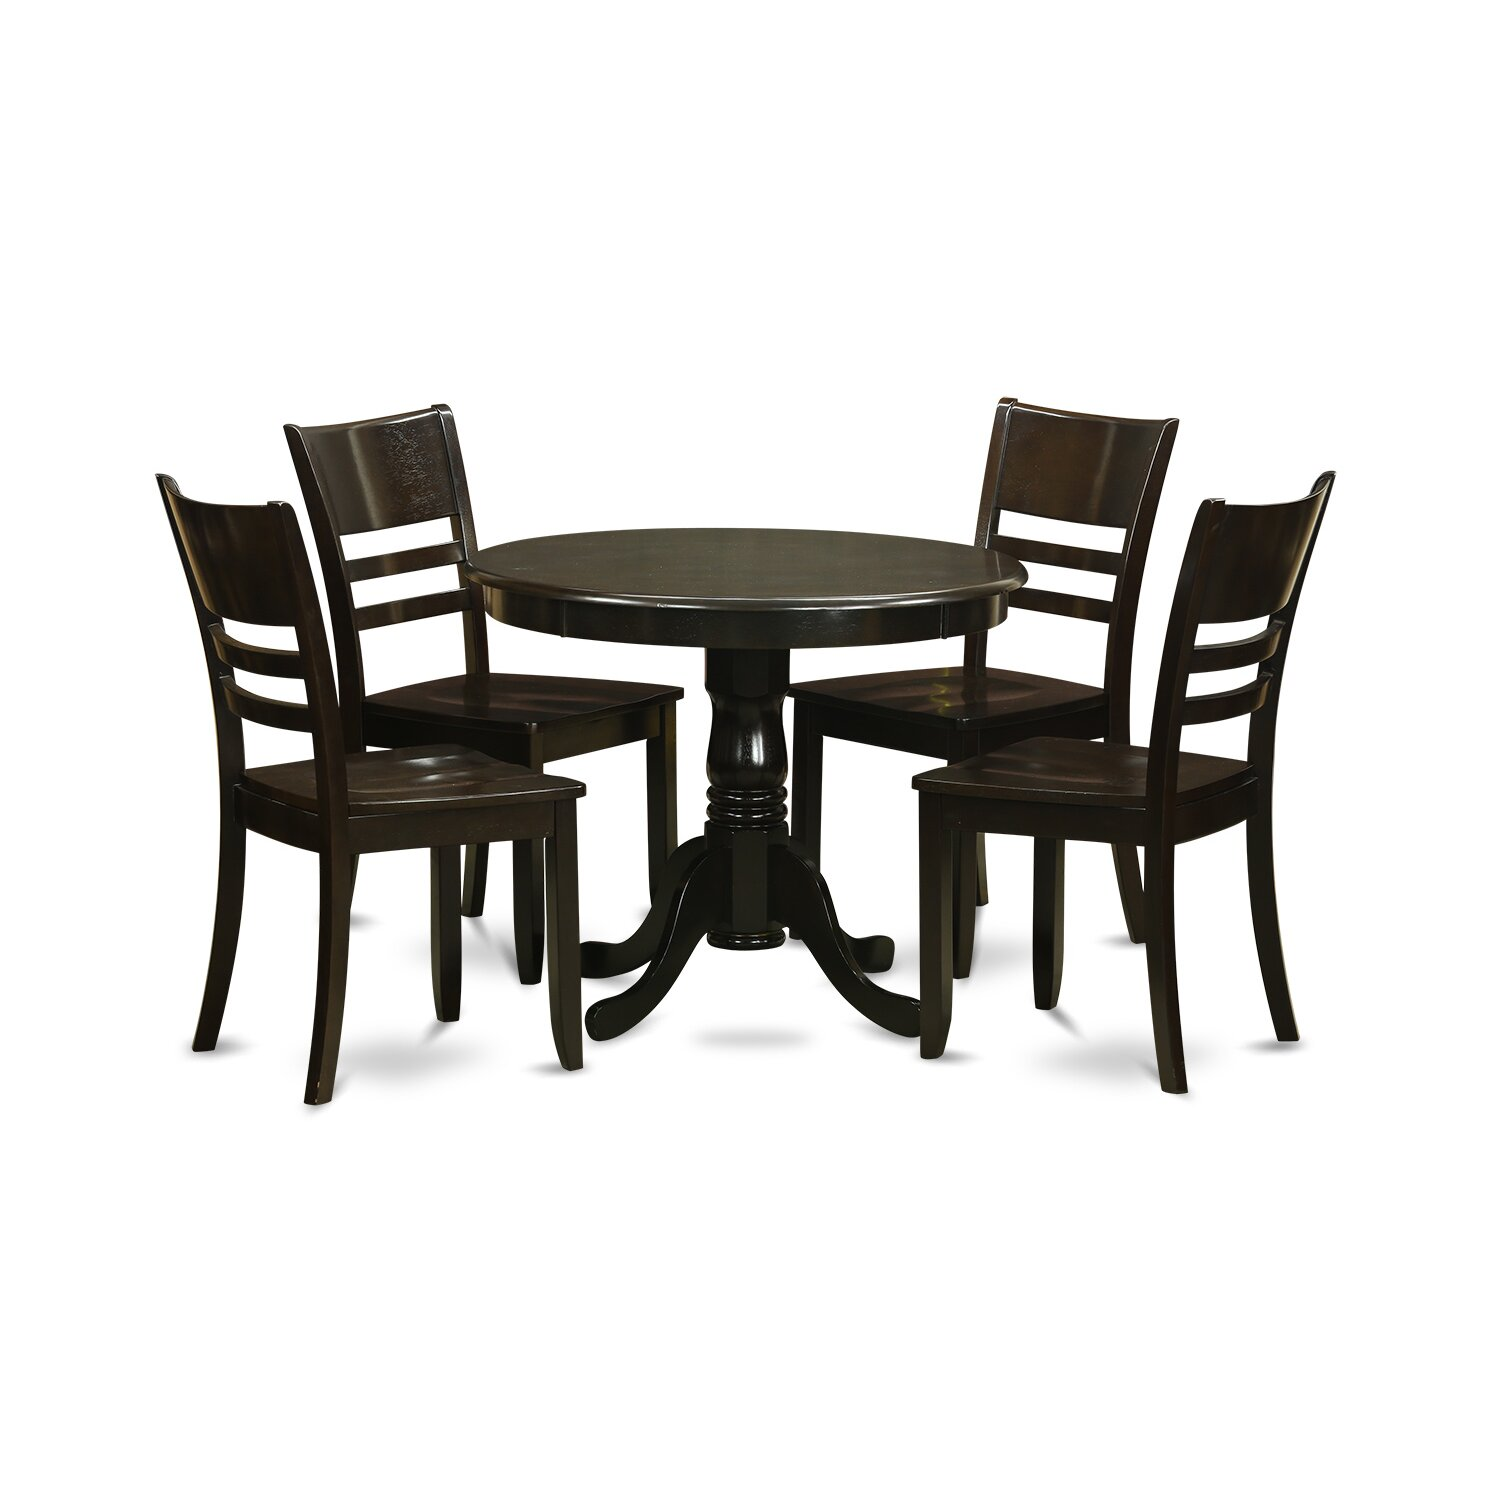 Wooden importers 5 piece dining set wayfair for 5 piece dining room set with bench